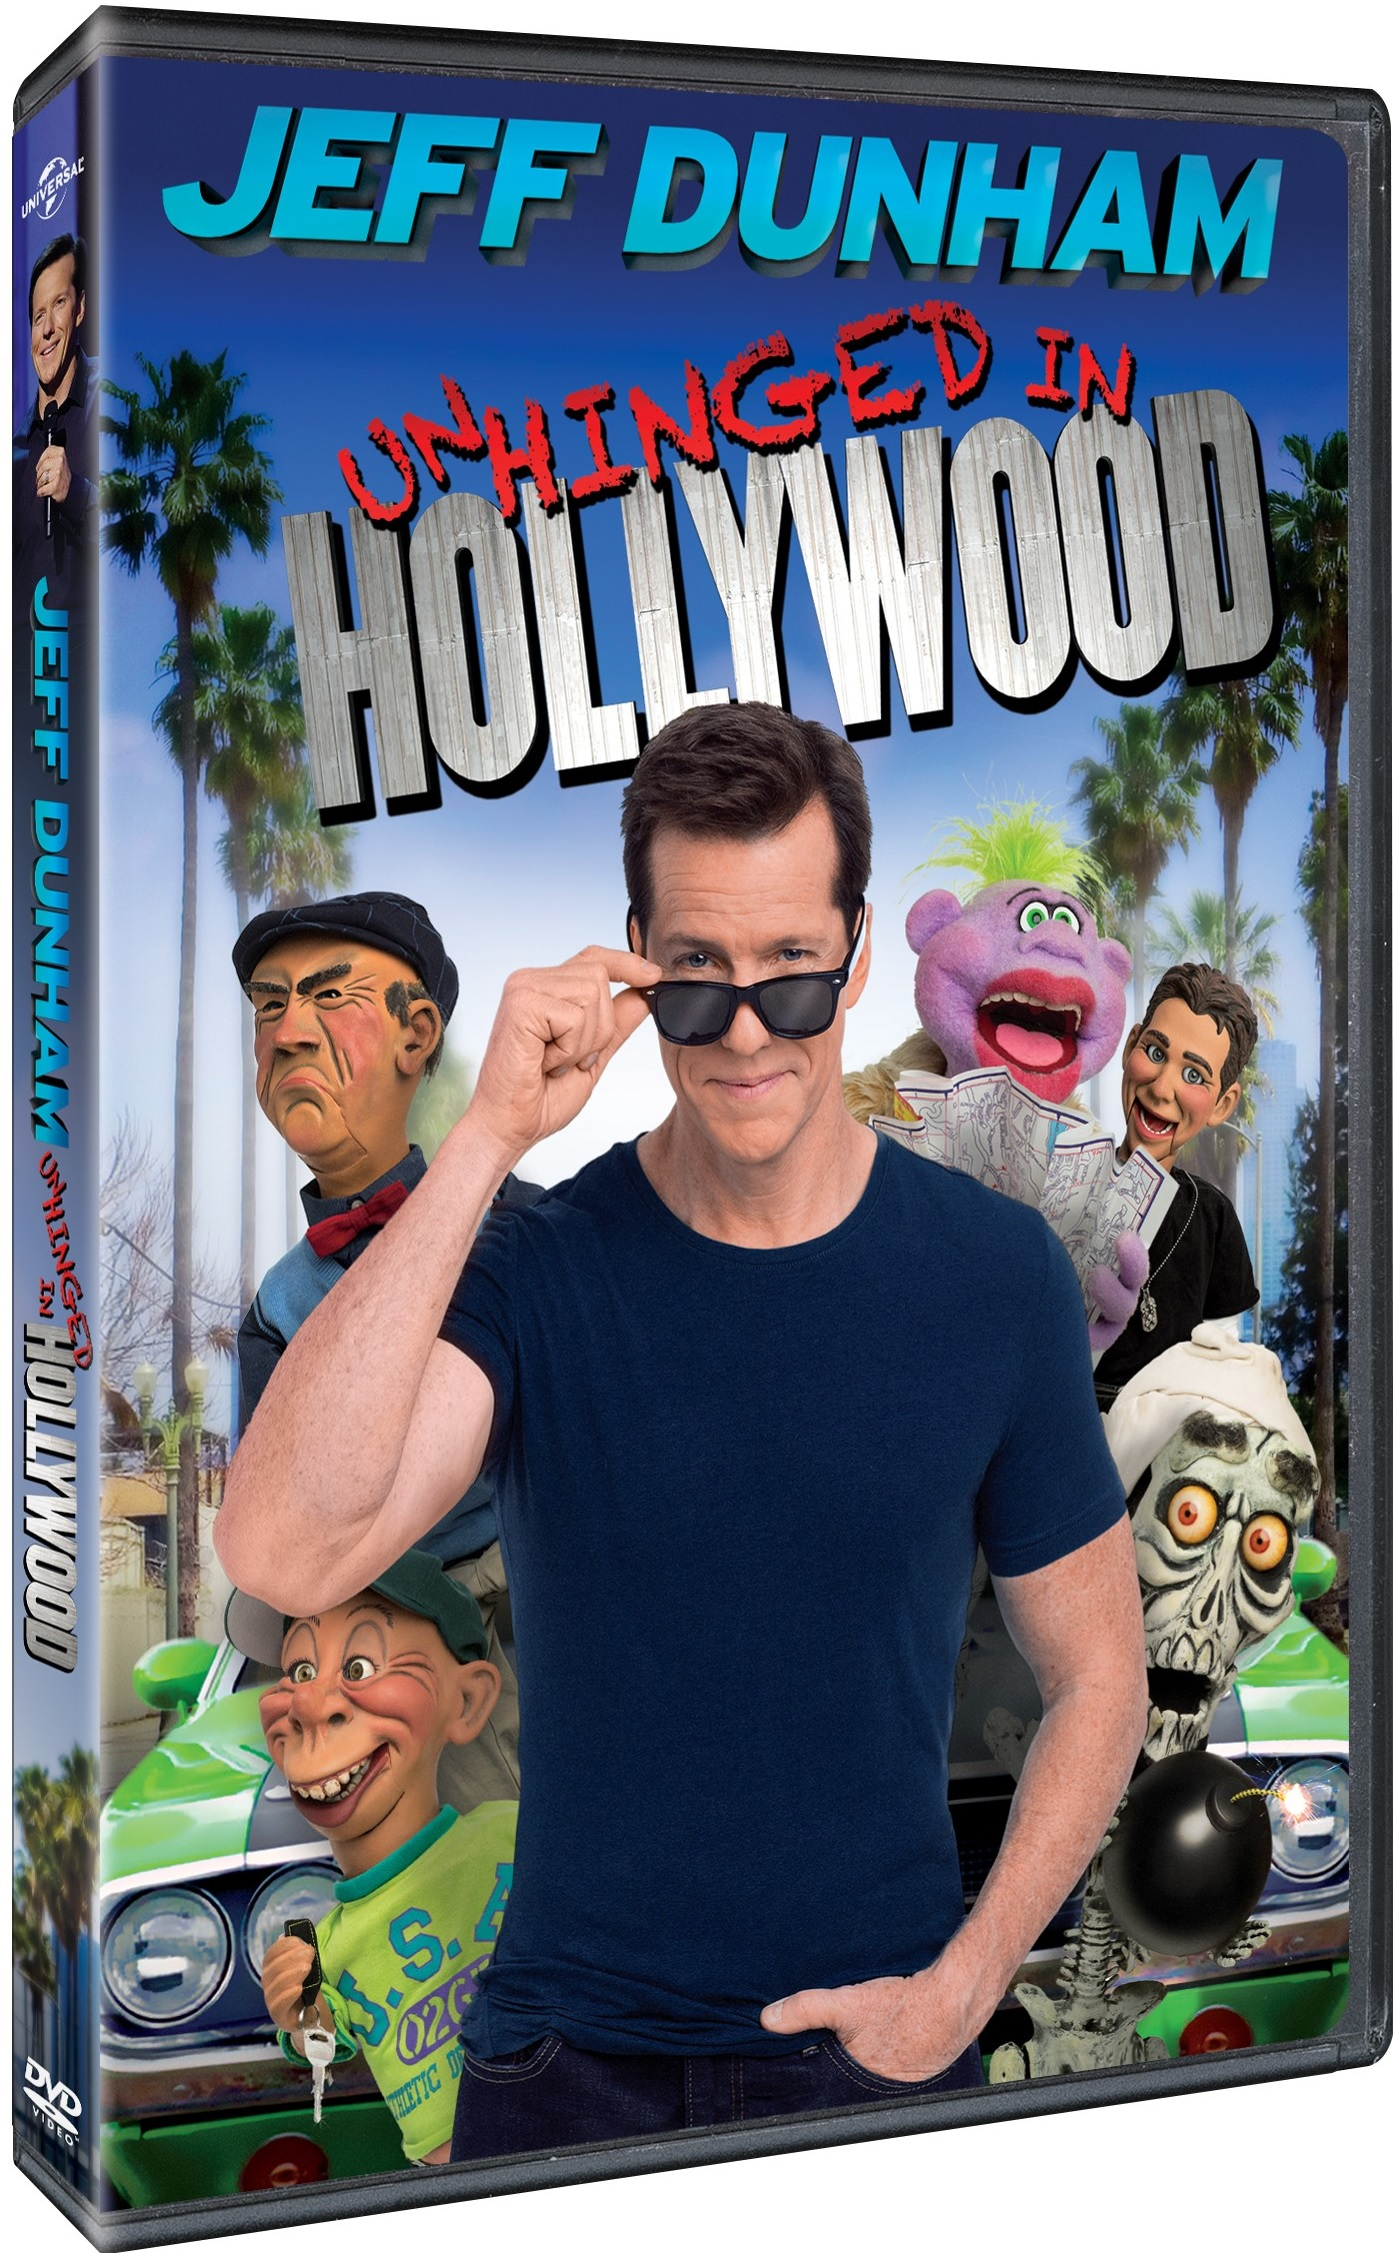 Jeff Dunham Unhinged in Hollywood DVD Review